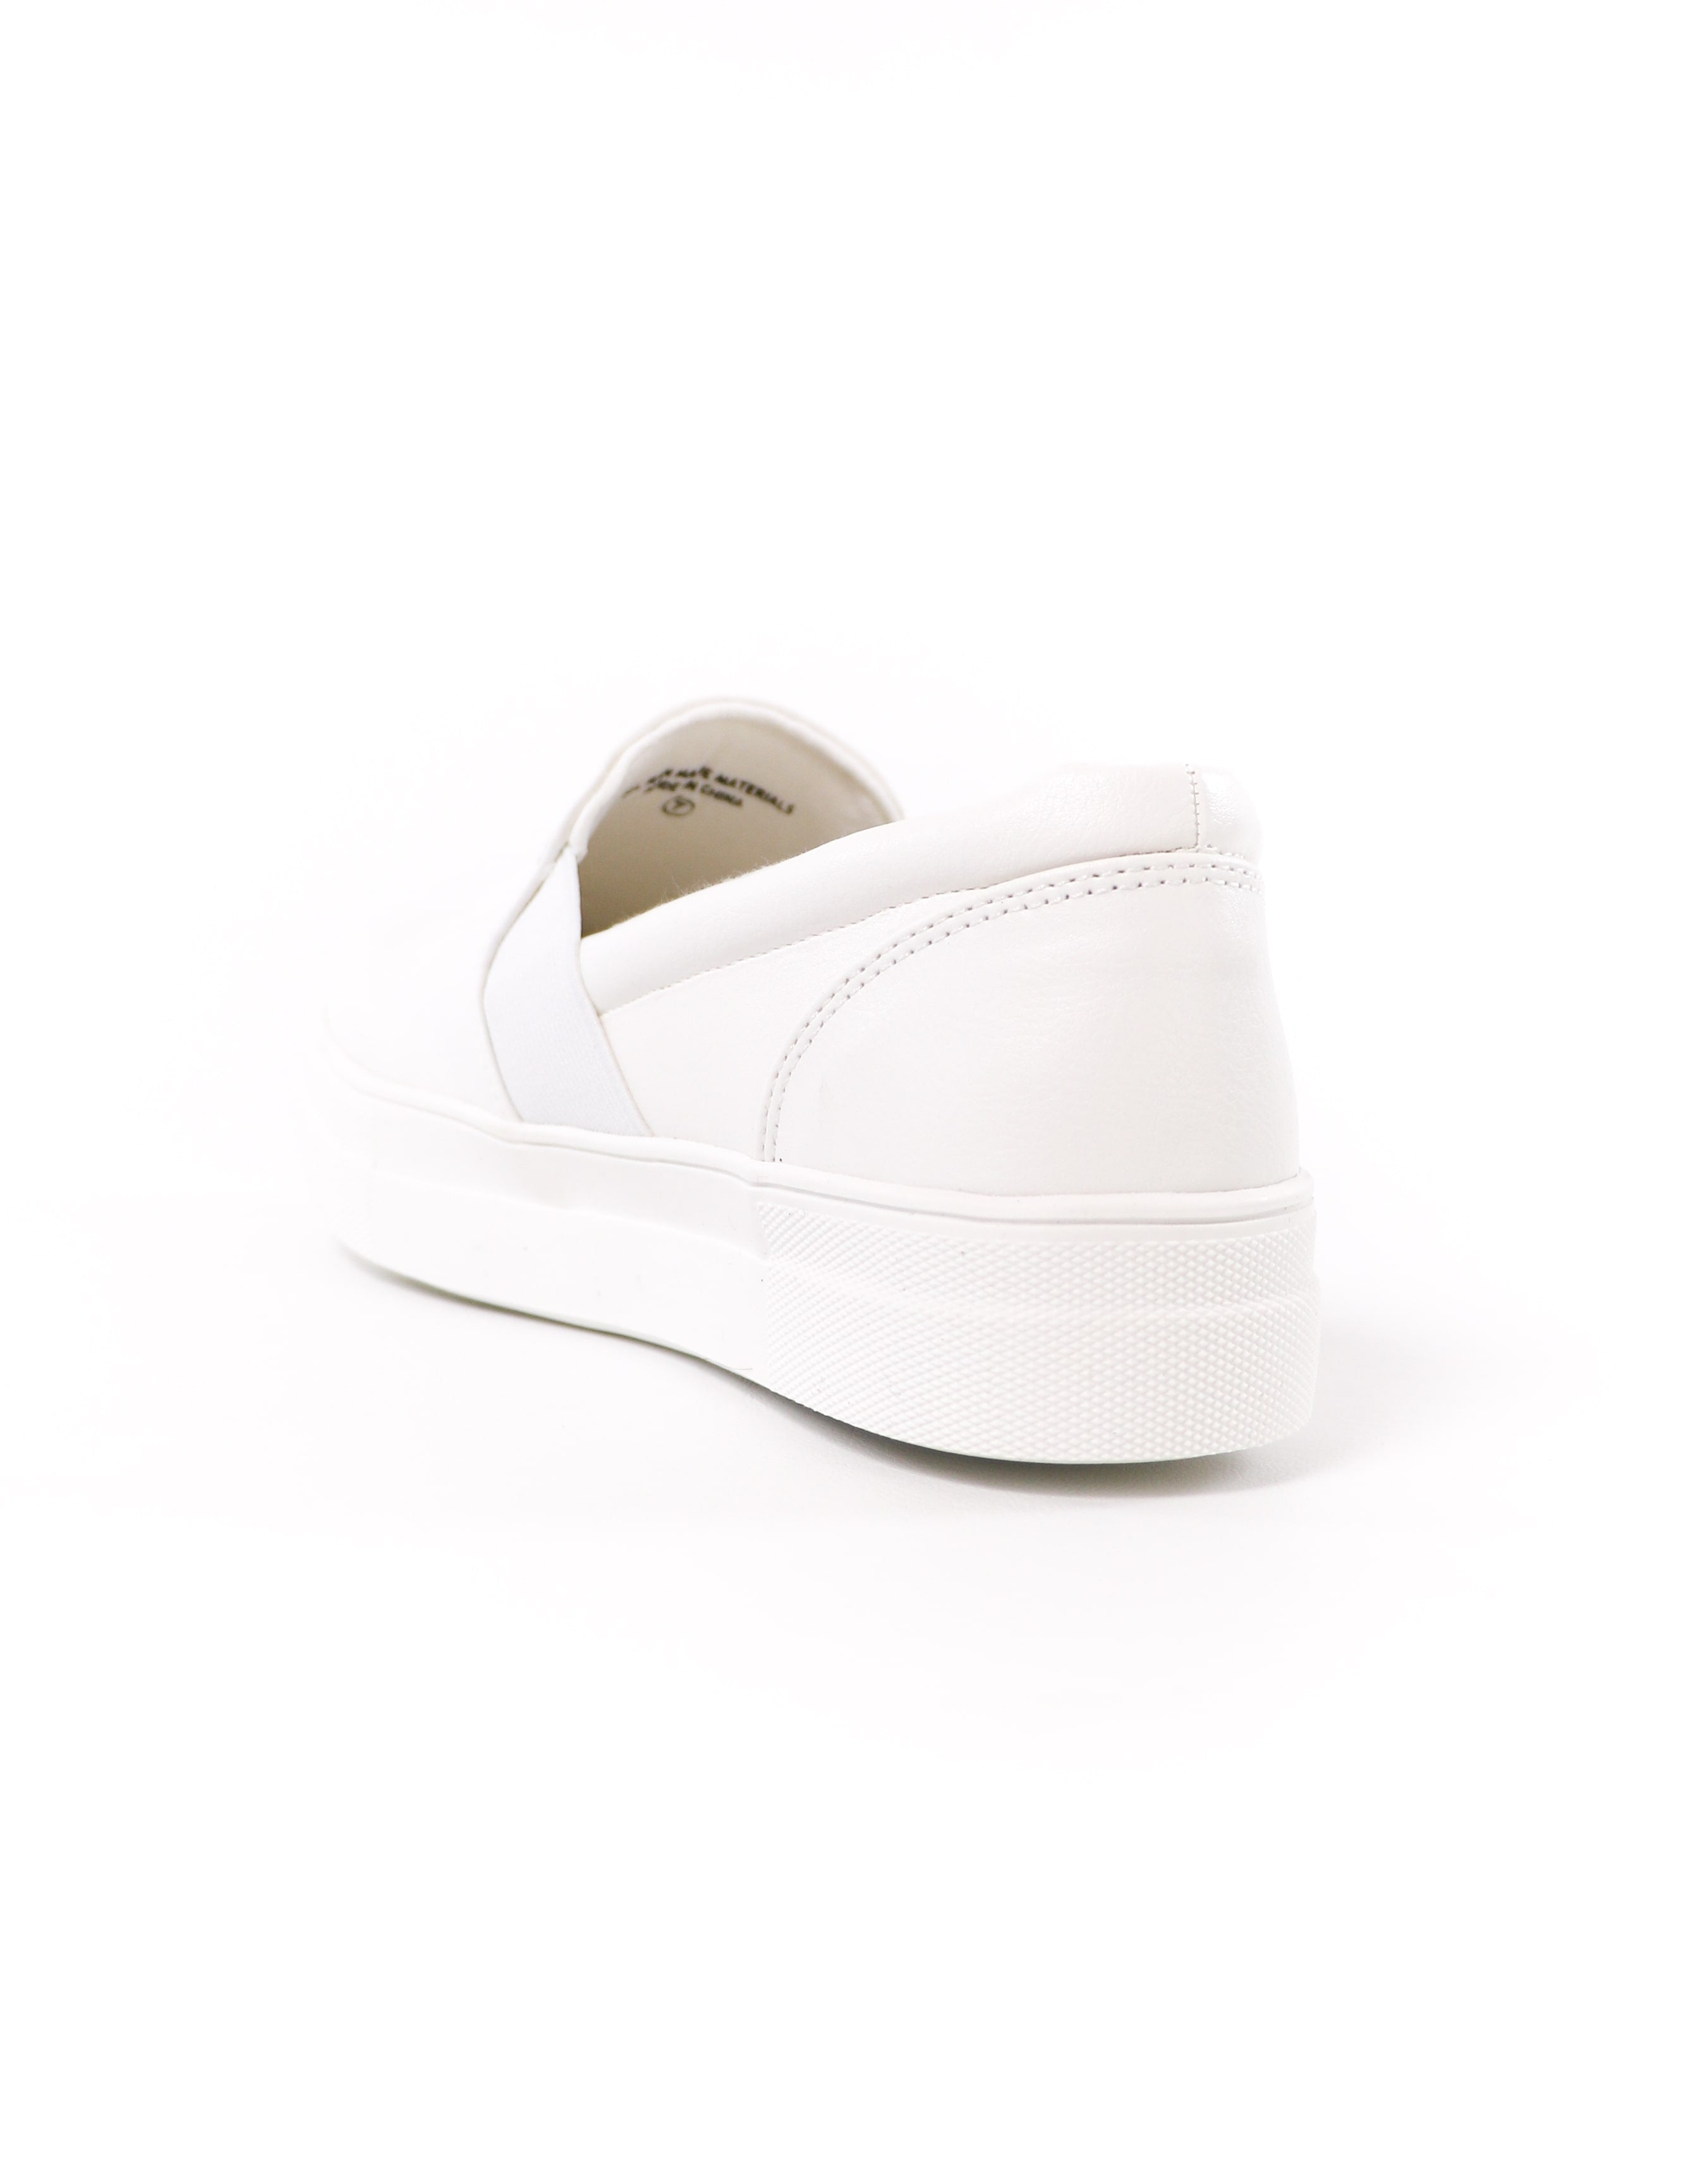 back of the white kickin' it sole-o slip on sneaker on white background - elle bleu shoes